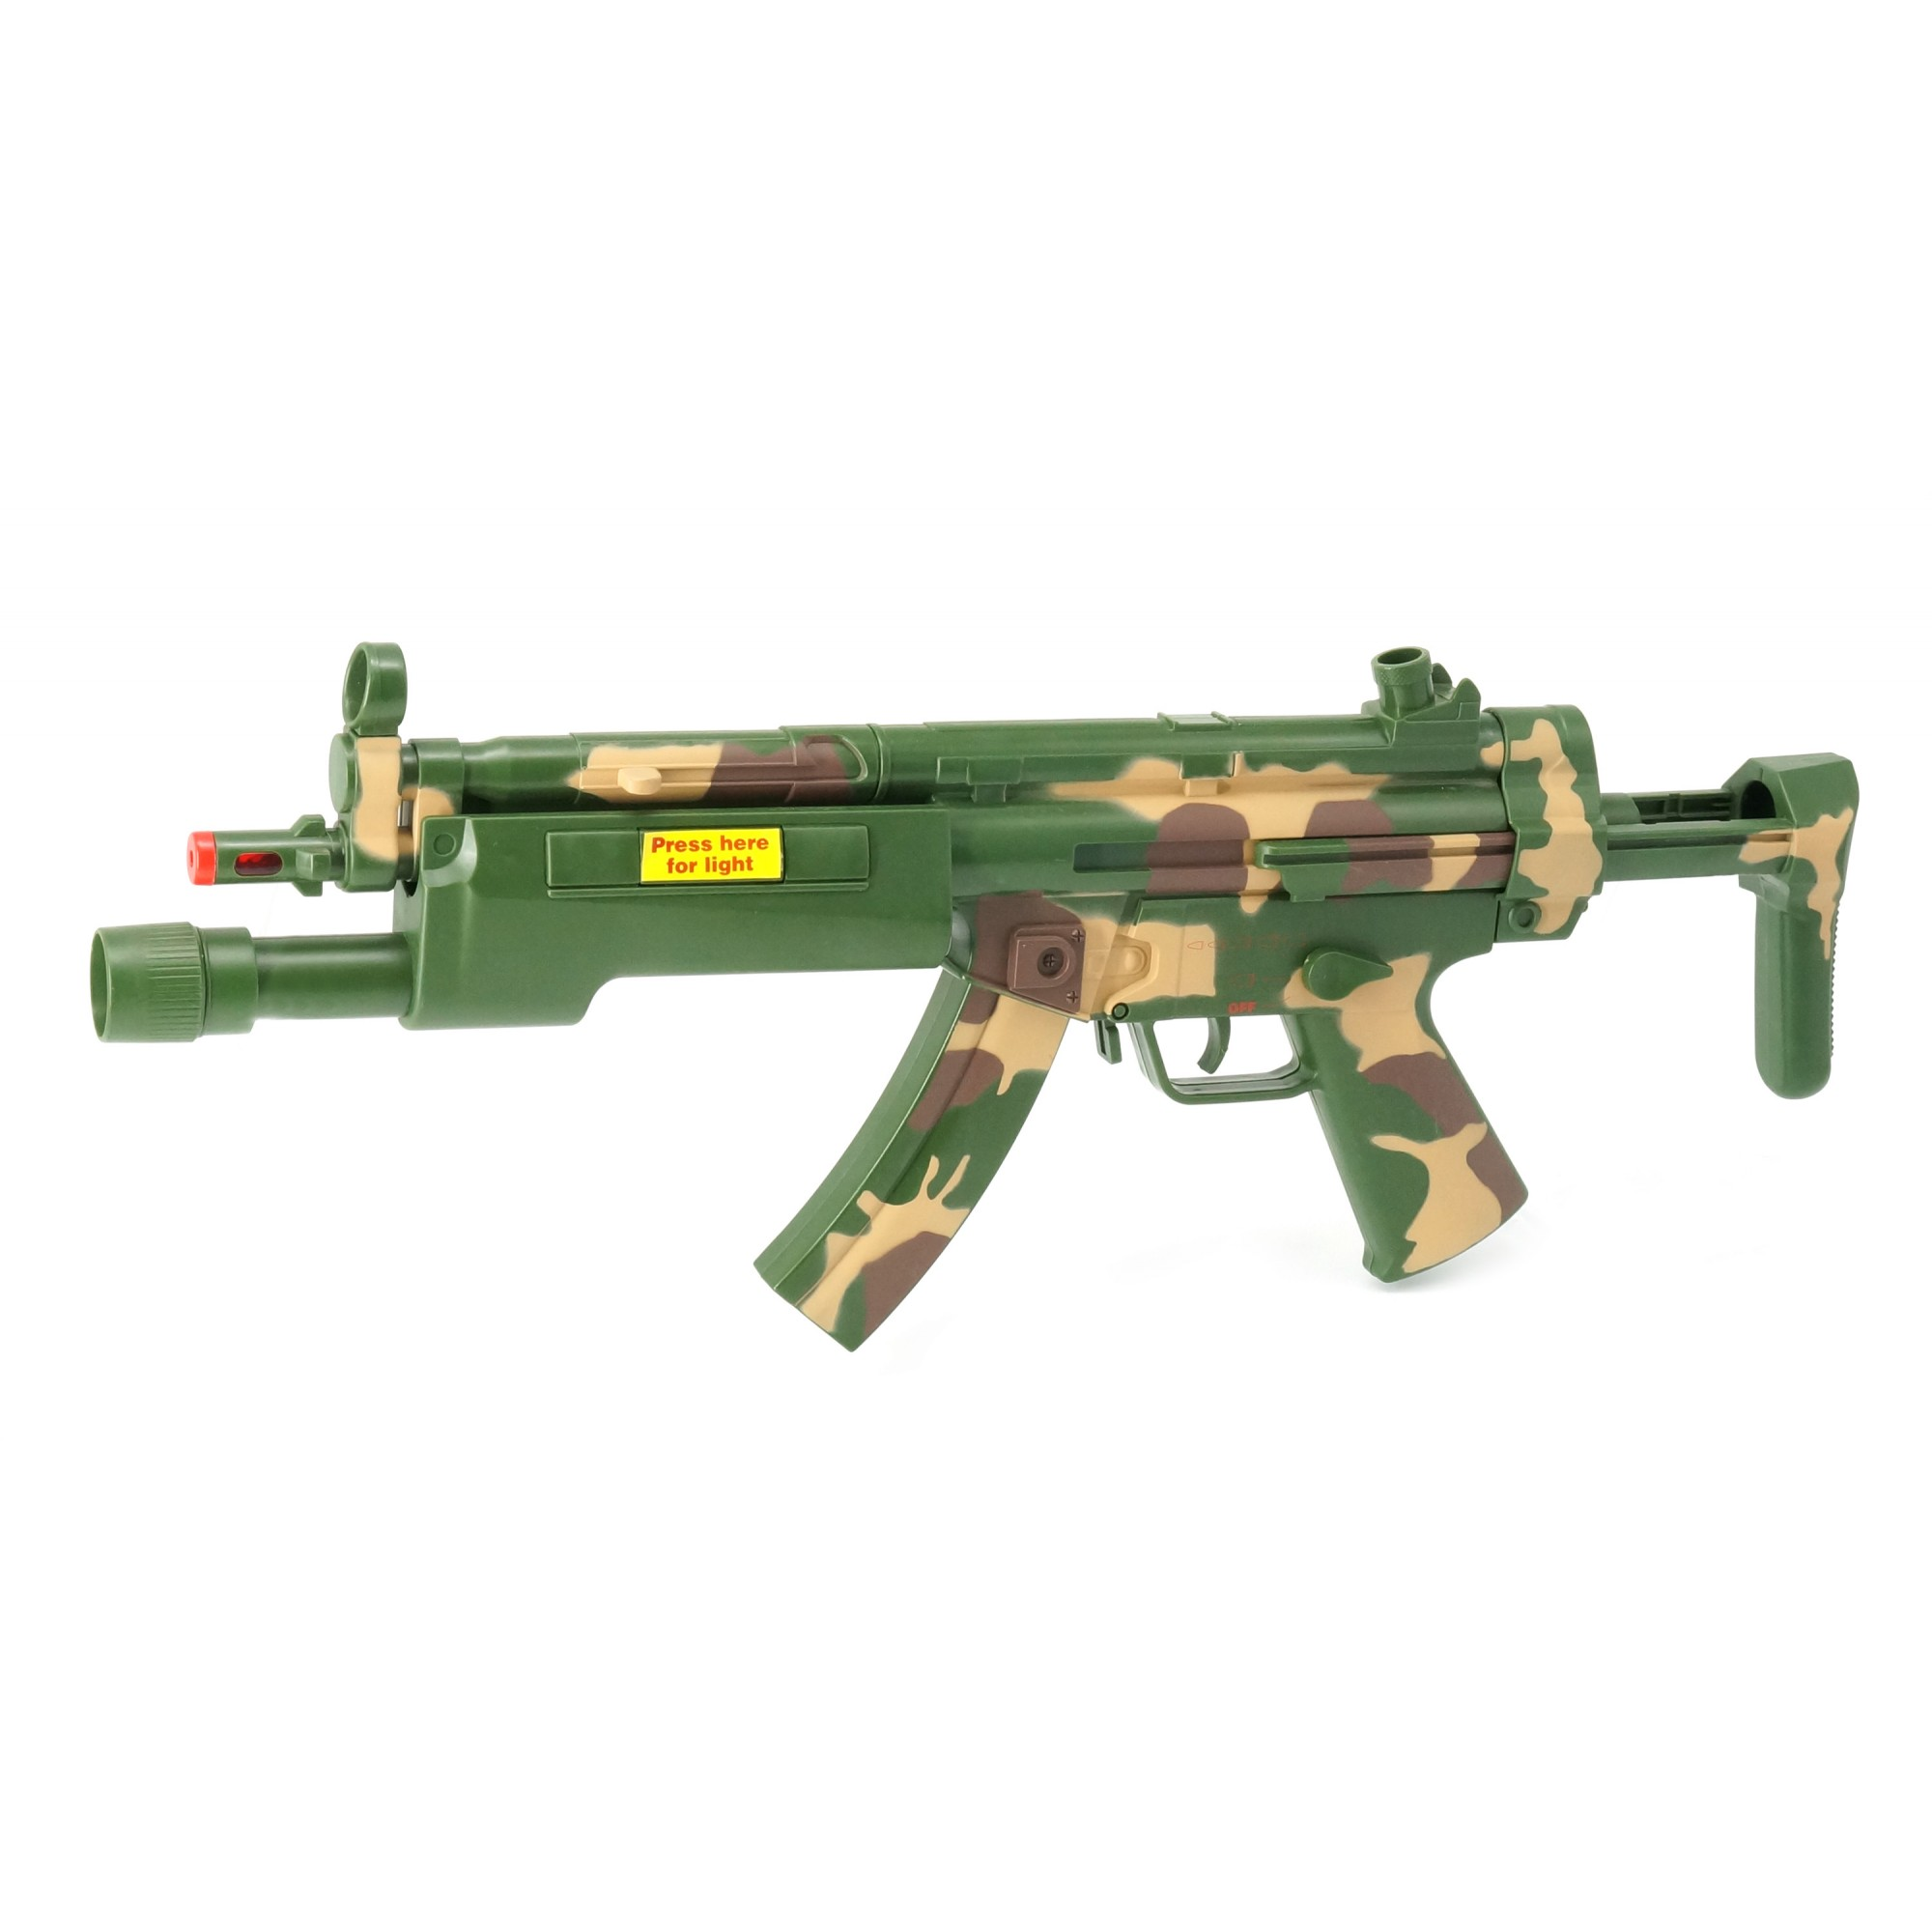 Combat MP5 A5 W/Light, Sound, Vibration